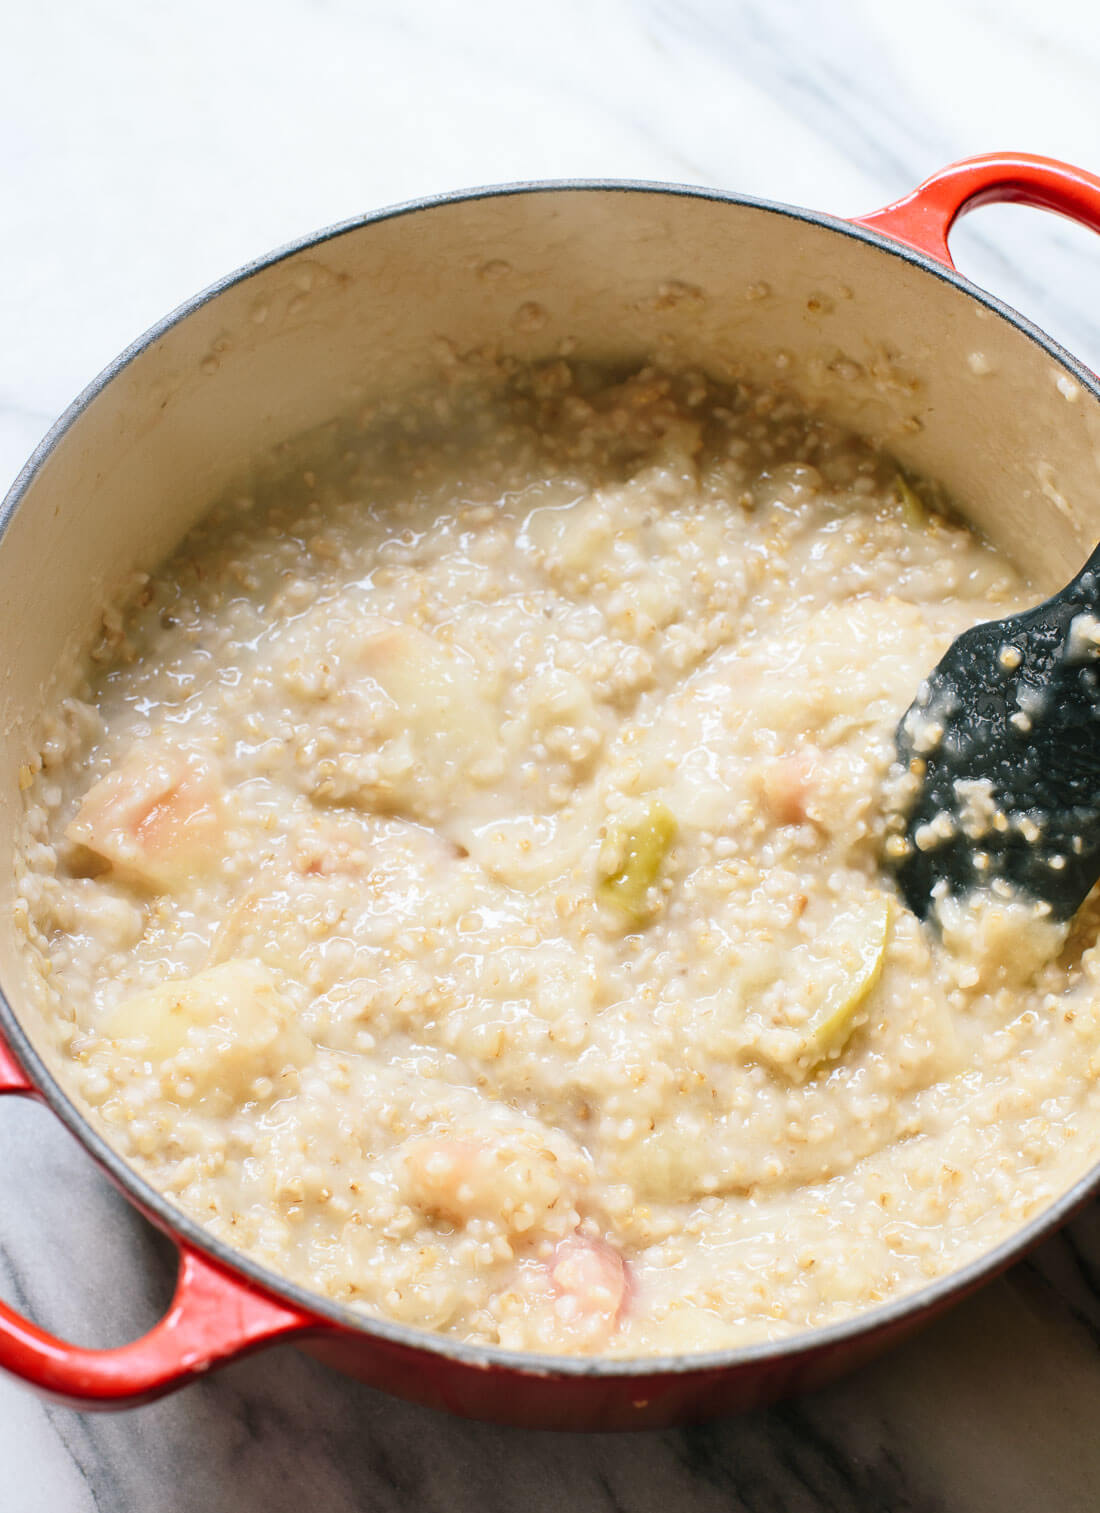 This amazing apple oatmeal is a one-pot, healthy breakfast that reheats beautifully for busy weekday mornings. cookieandkate.com